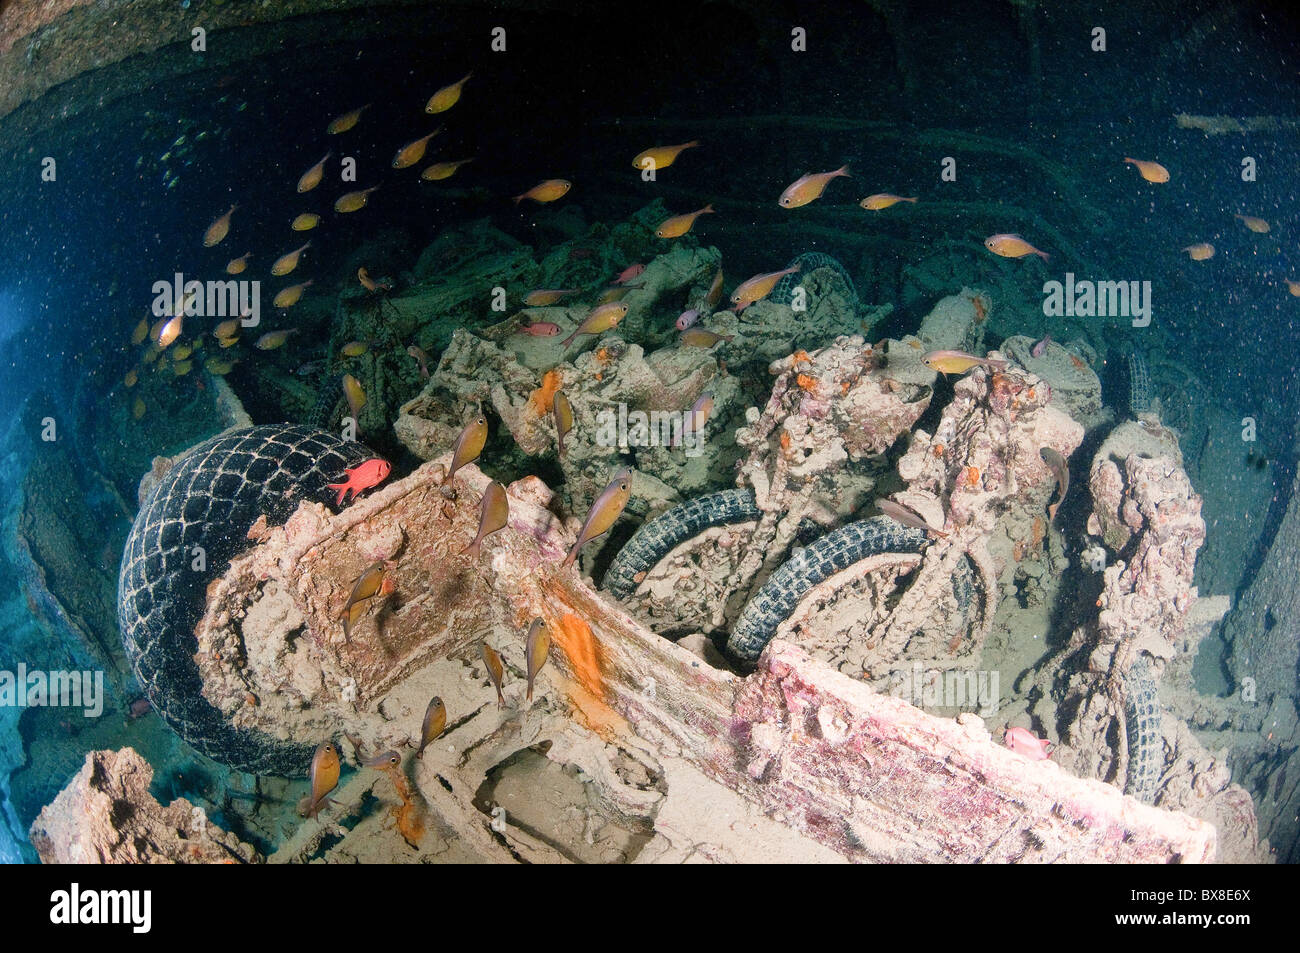 Underwater photography of a sunken ship wreck carrying a ...